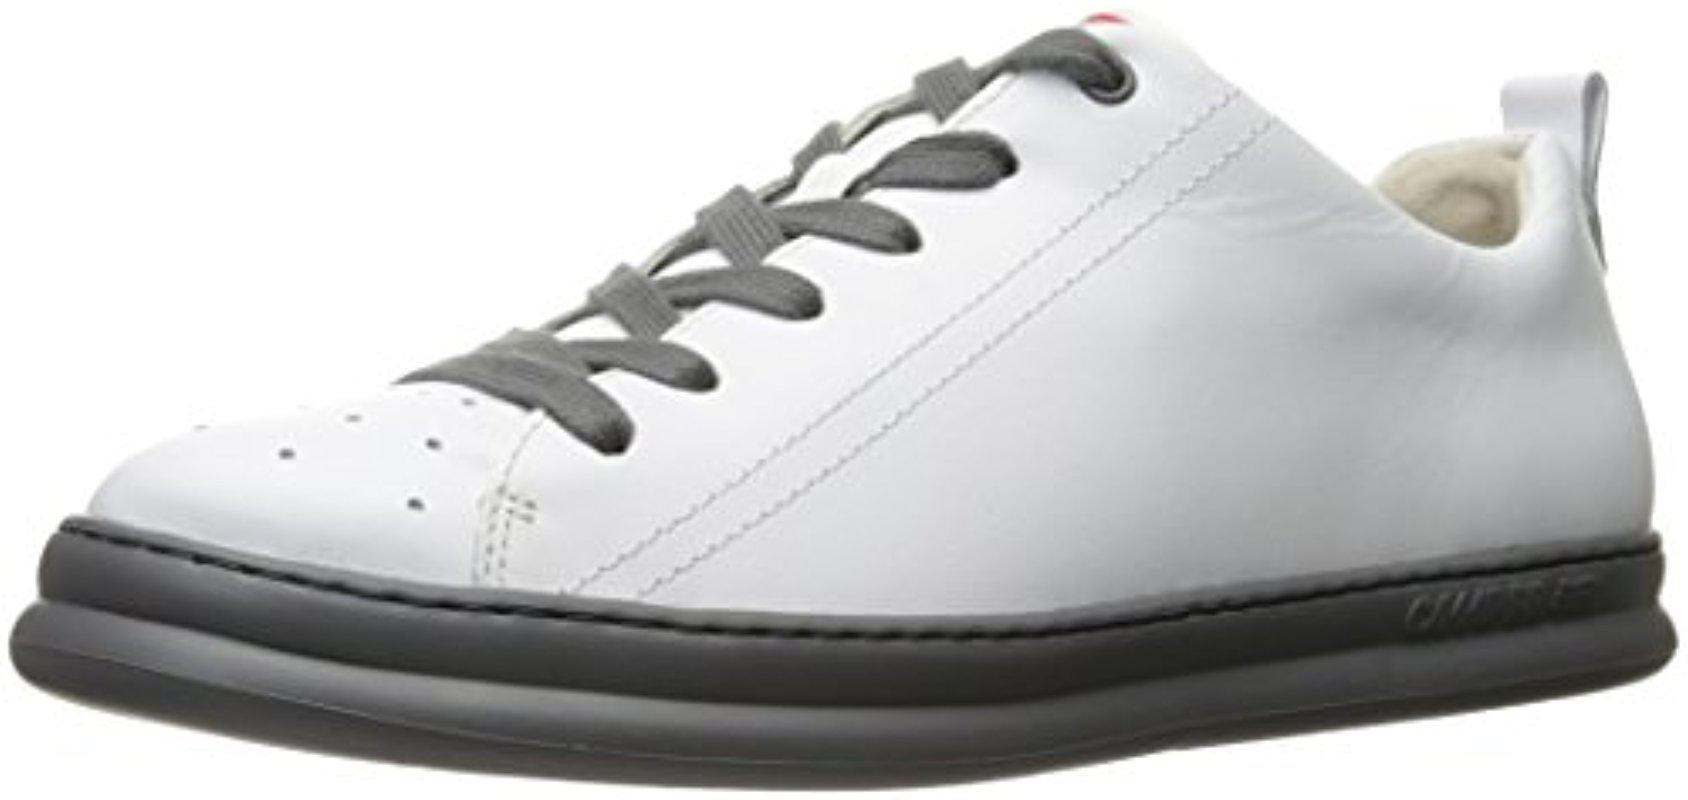 Runner Four sneakers - White Camper KAuxItBAK